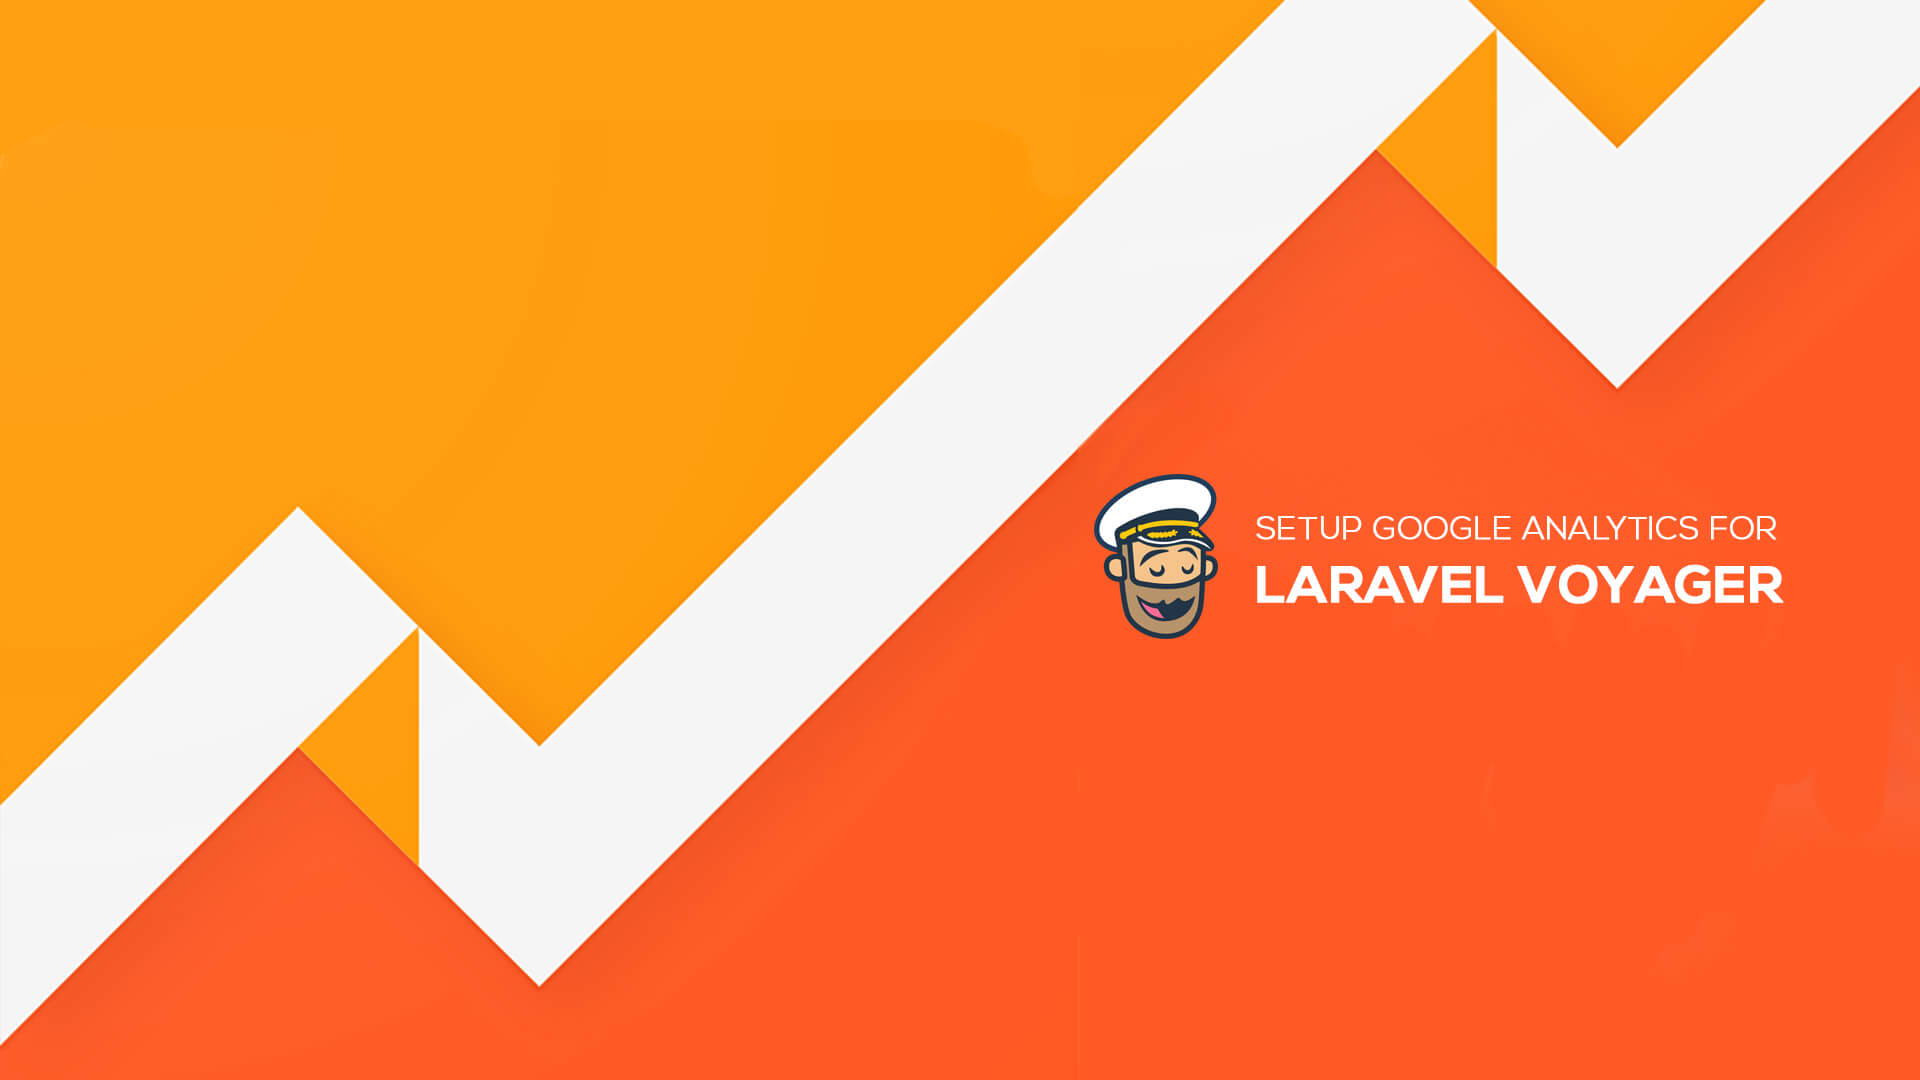 Setup Google Analytics for Laravel Voyager